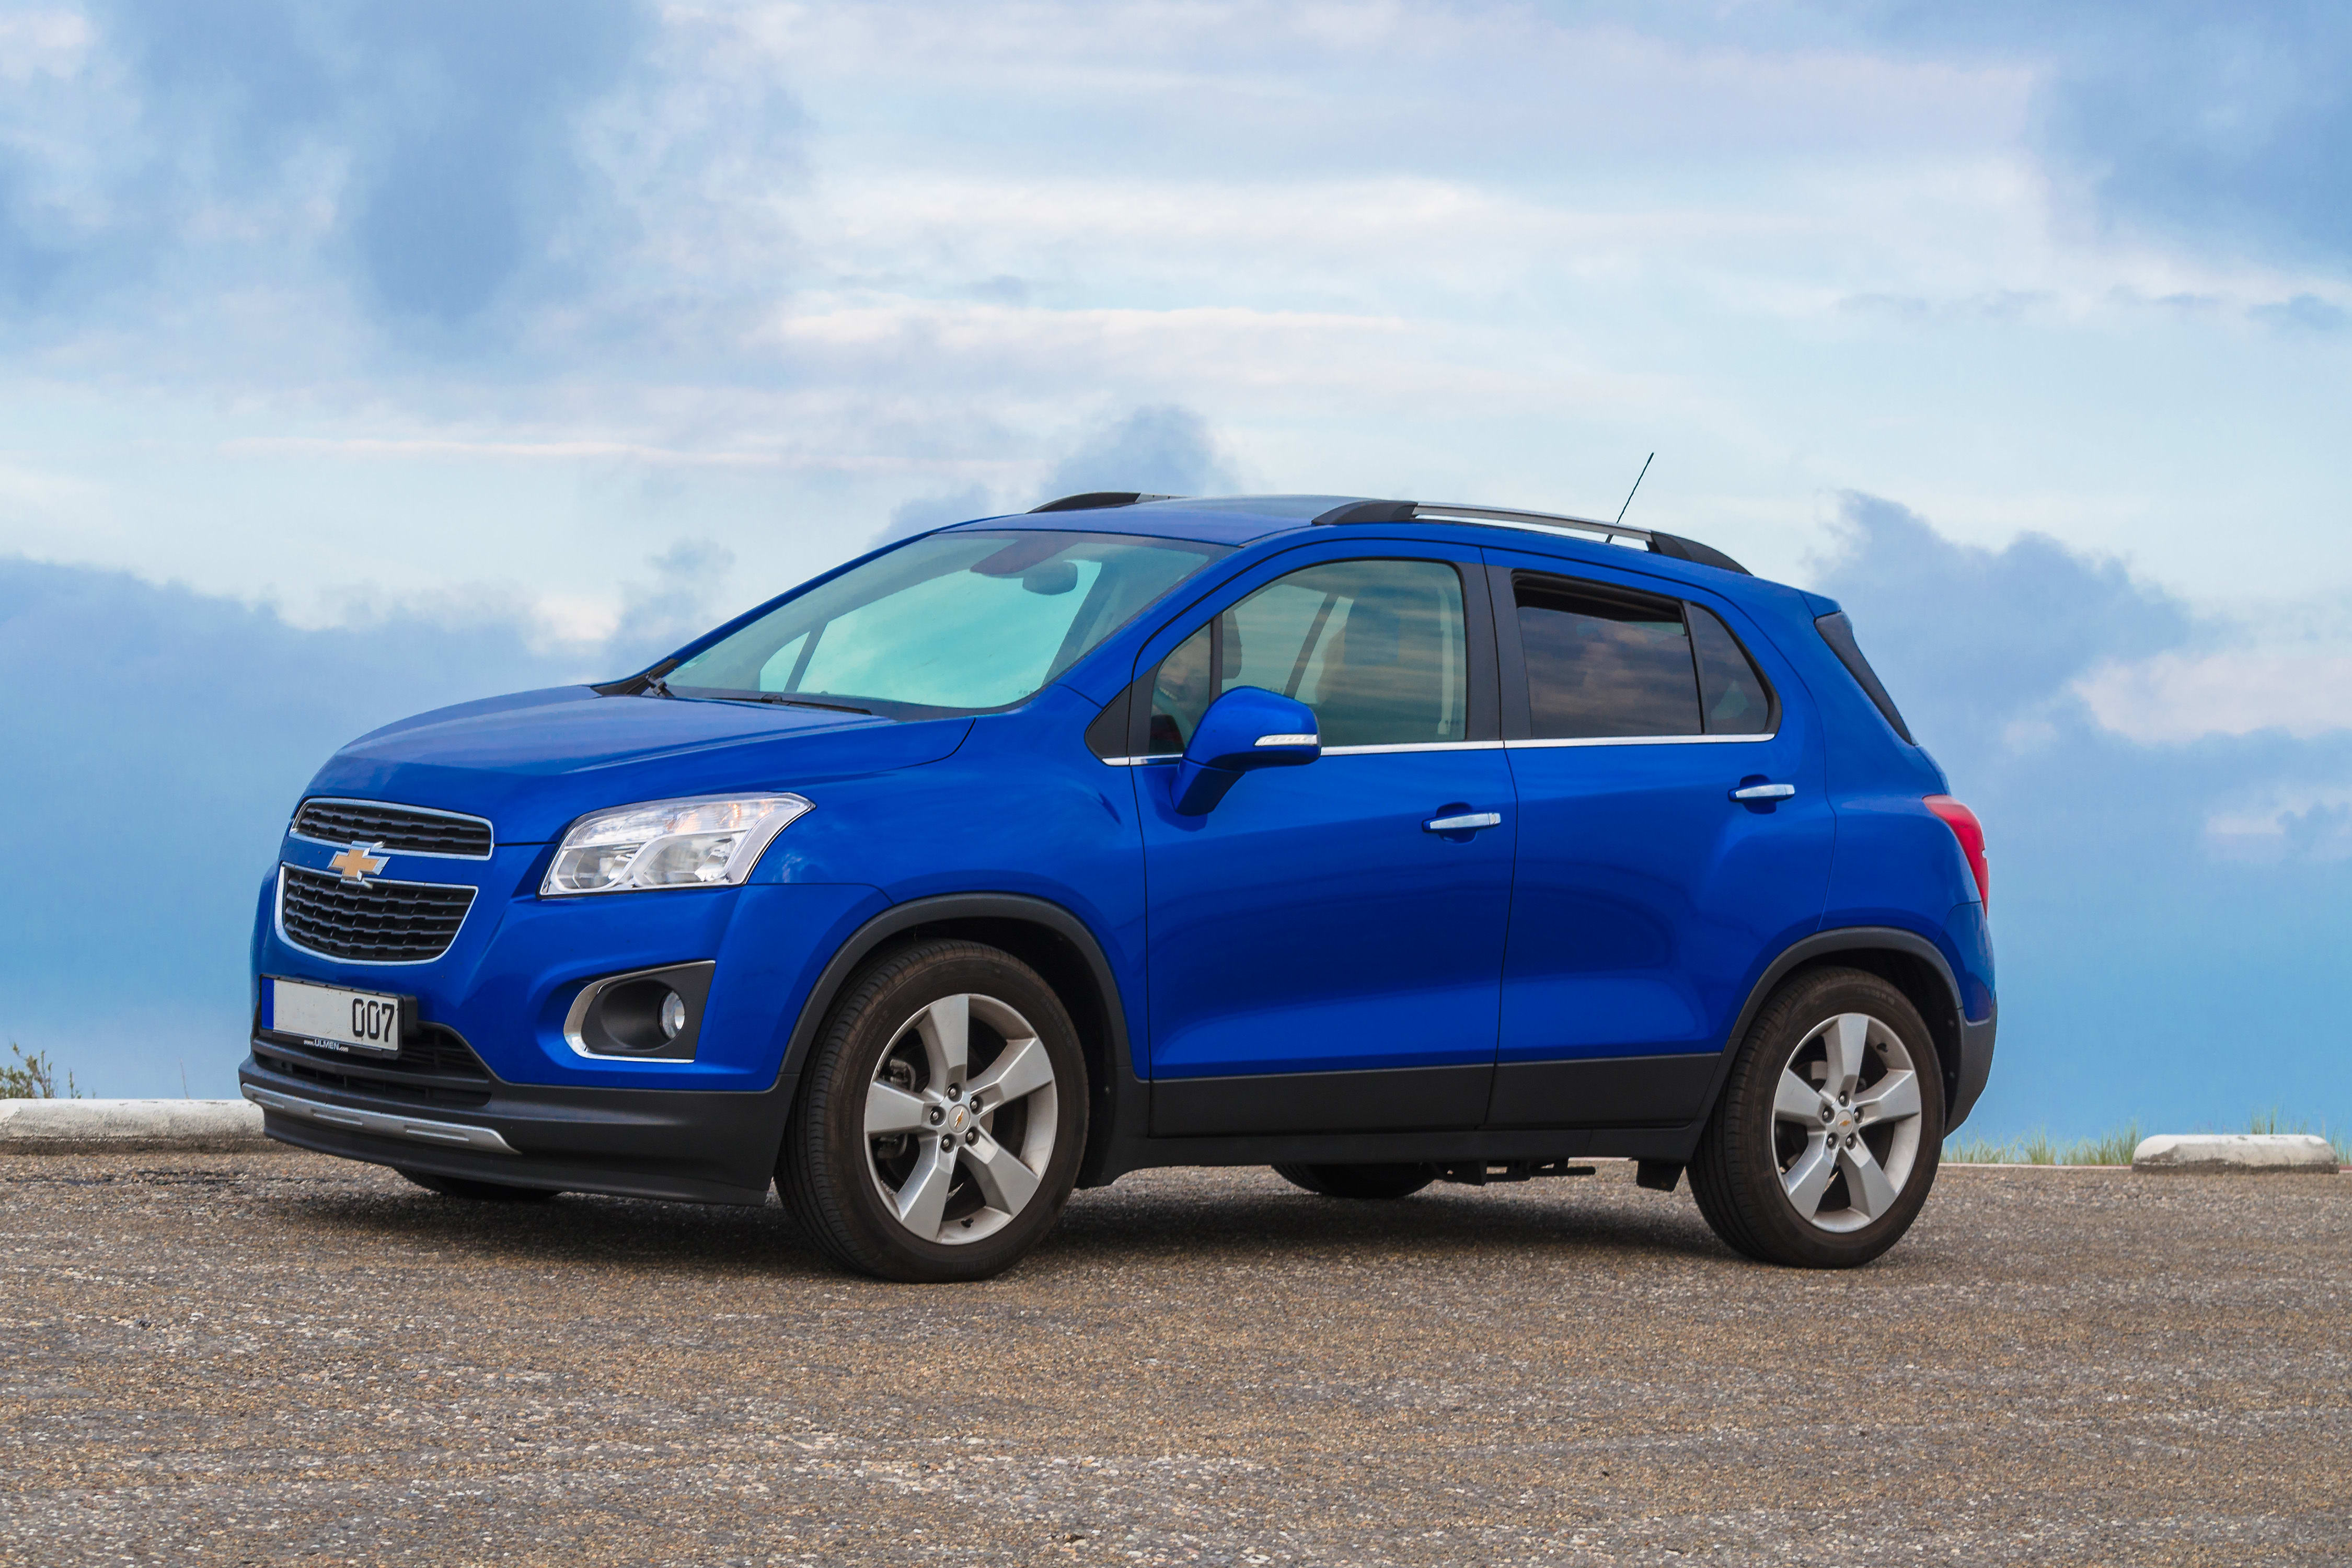 GM Recalls 2017 – 2019 Chevrolet Trax Vehicles for Steering Issues